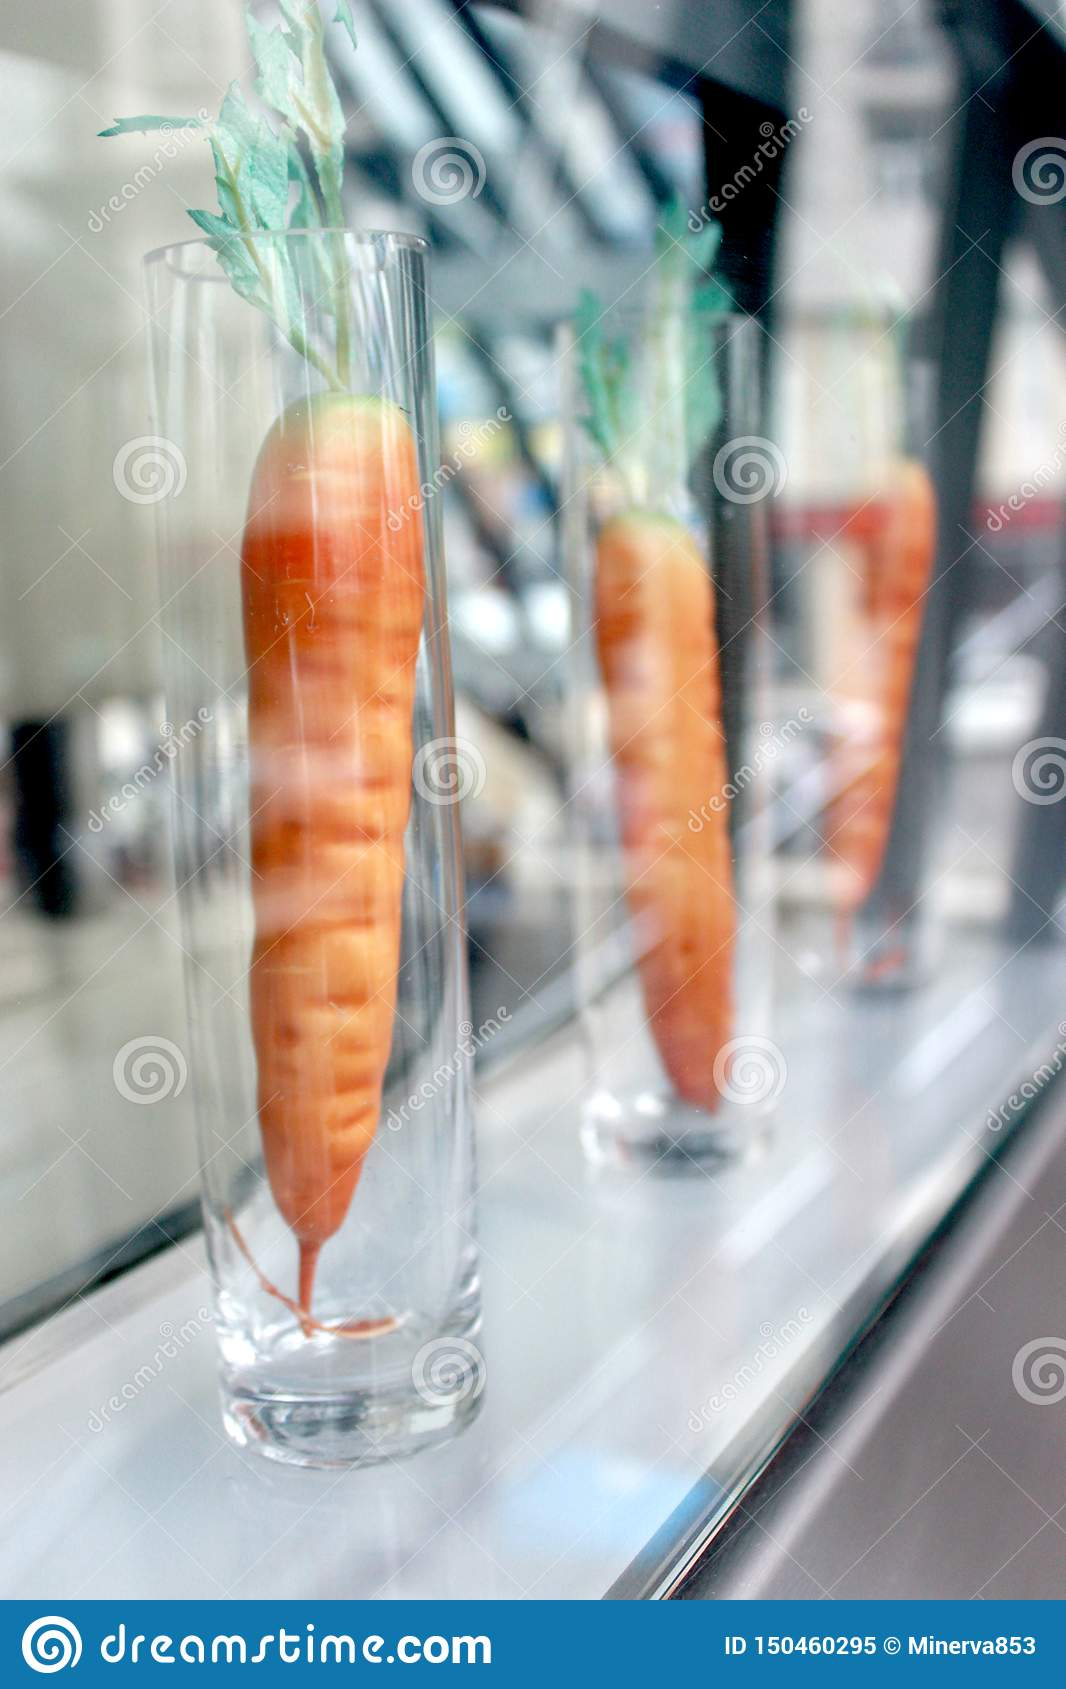 Artificial carrots in long transparent glasses.